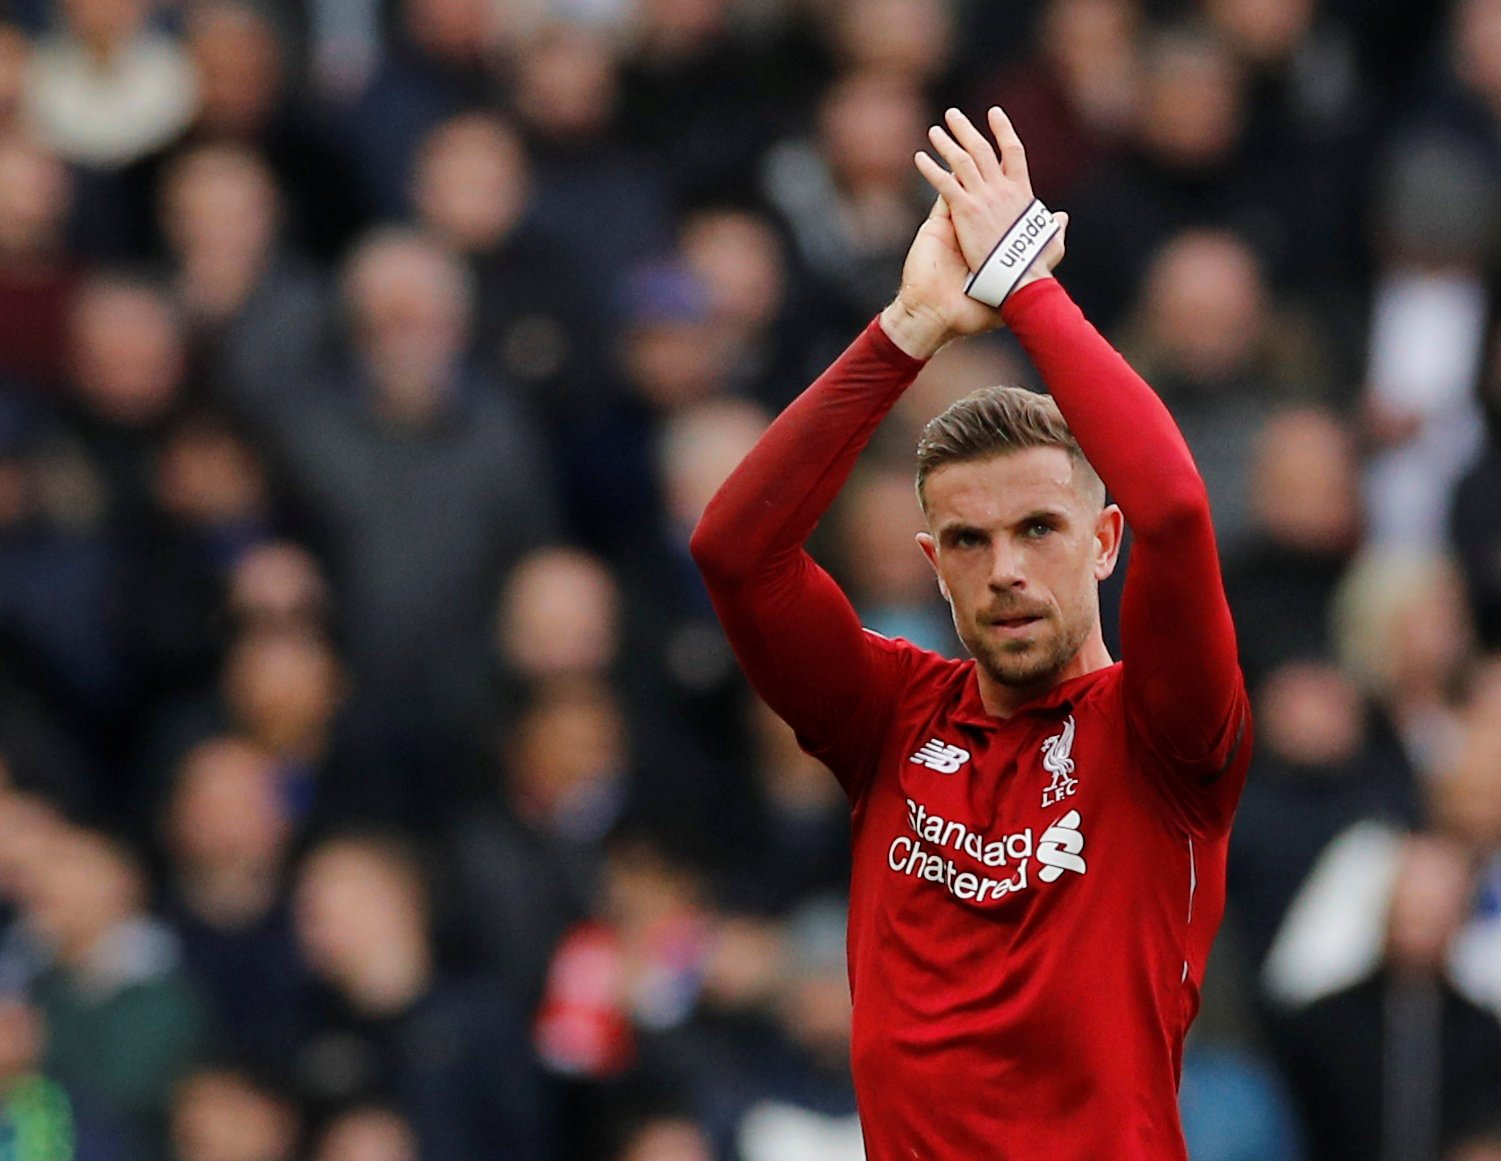 2019 04 14T170918Z 1739301198 RC1ABB3B8260 RTRMADP 3 SOCCER ENGLAND LIV CHE - Sissoko v Henderson, semi-final heroes: How the Champions League final could be decided